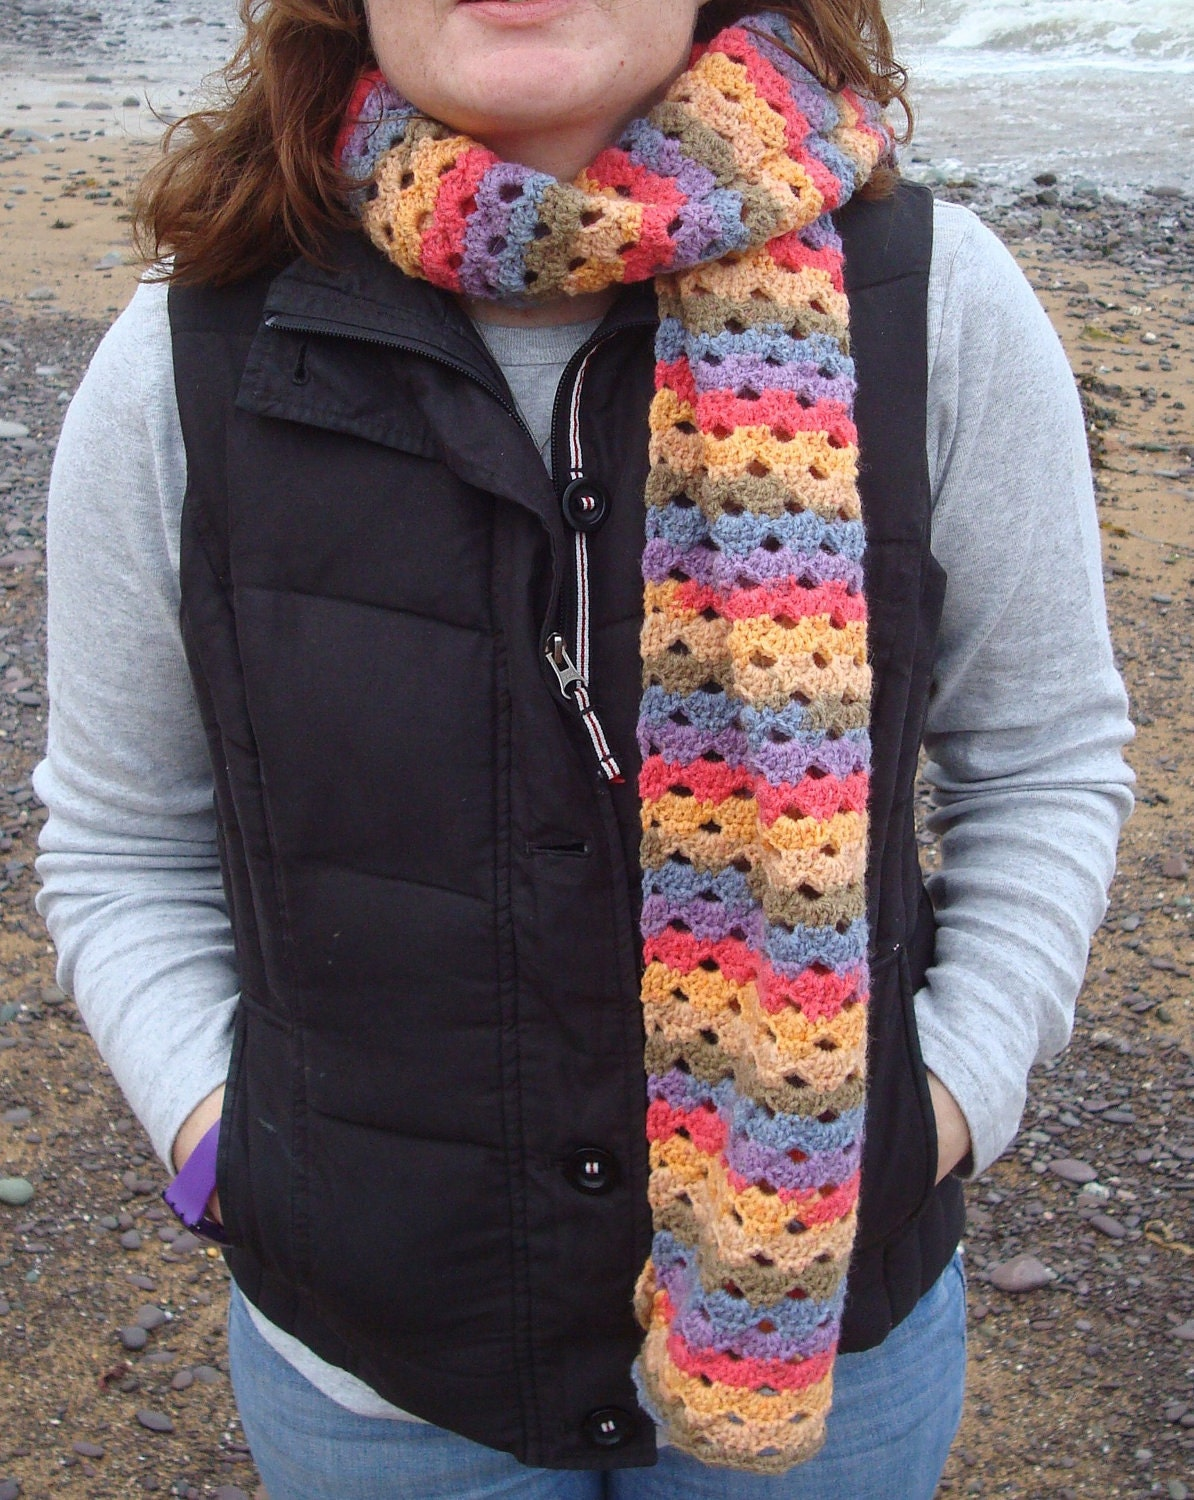 Rainbow Crochet Scarf Handmade in Ireland by SelkieCrochet on Etsy Handmade Scarves Ireland